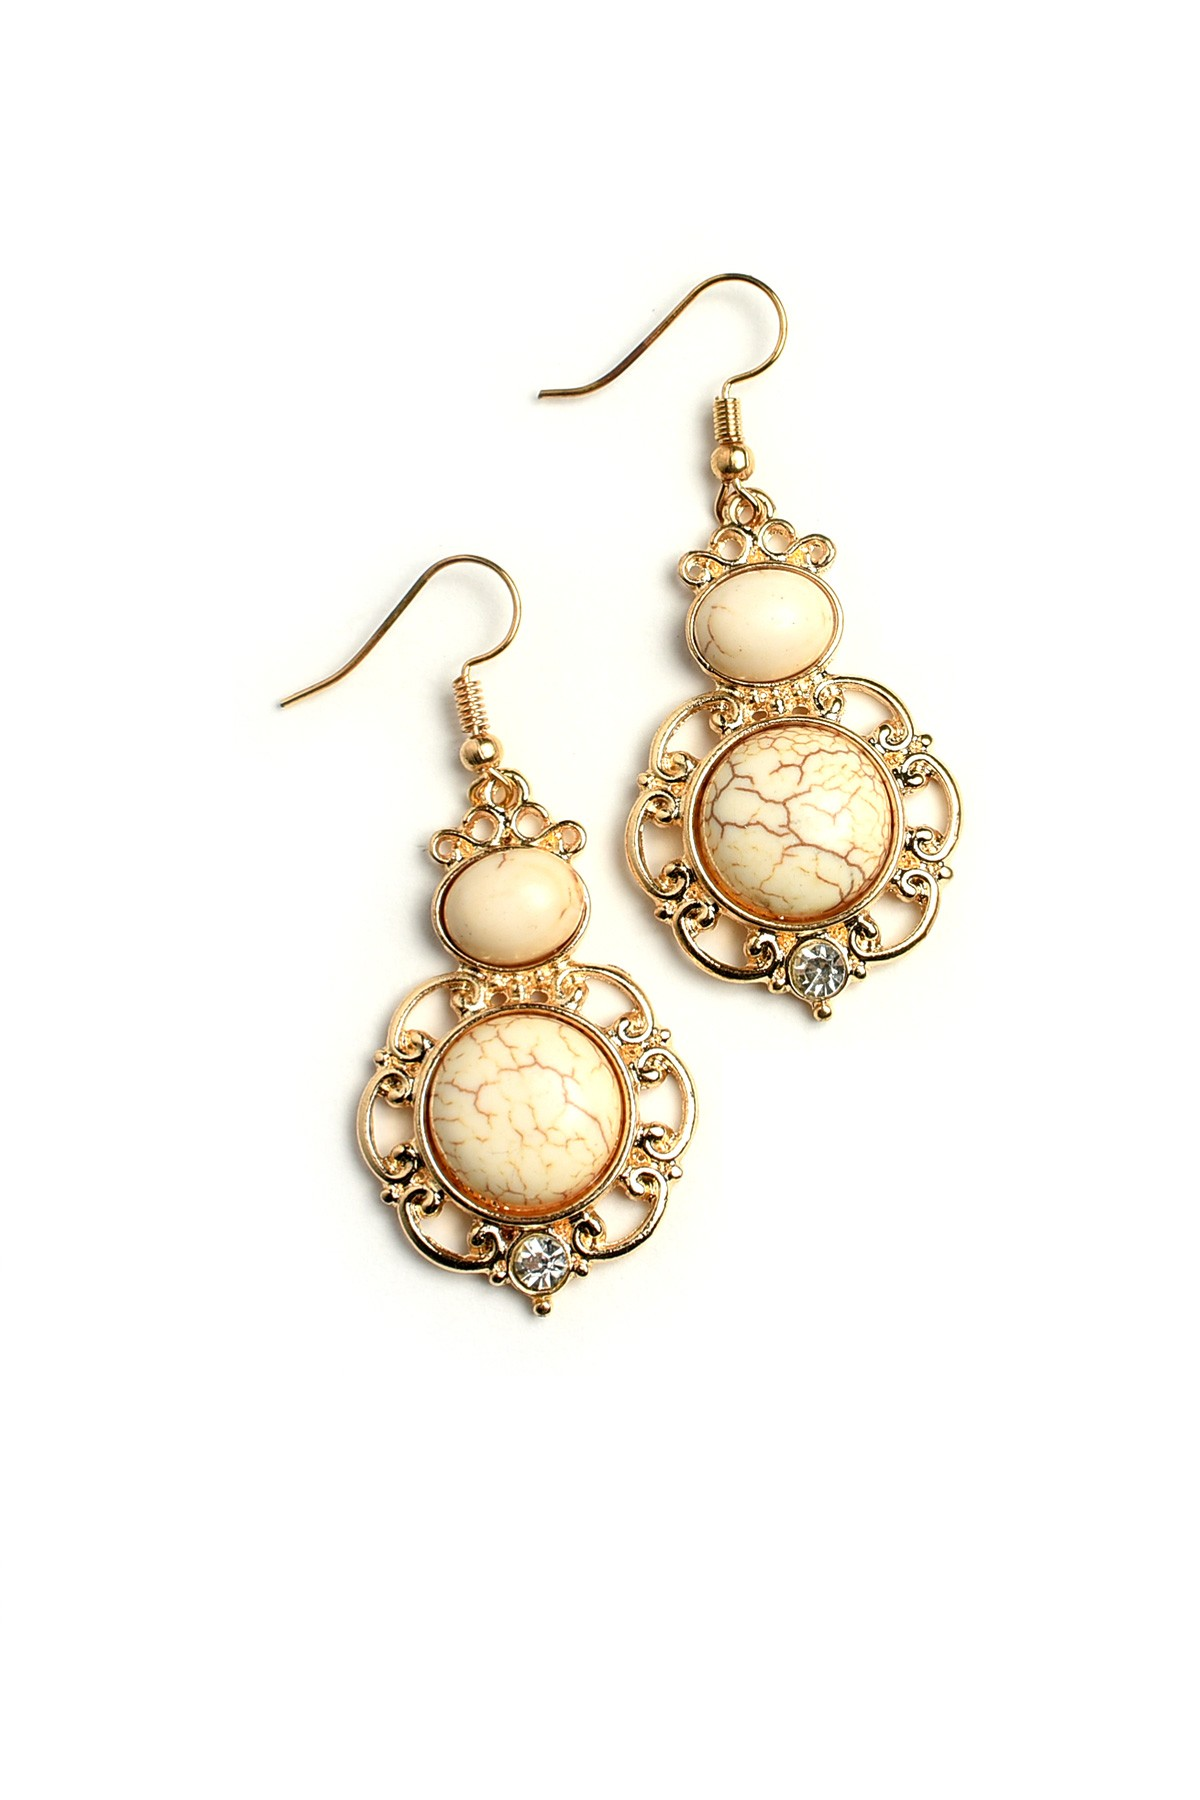 earrings product bazaar stingray customize gem buy online jewelers leather grand at and